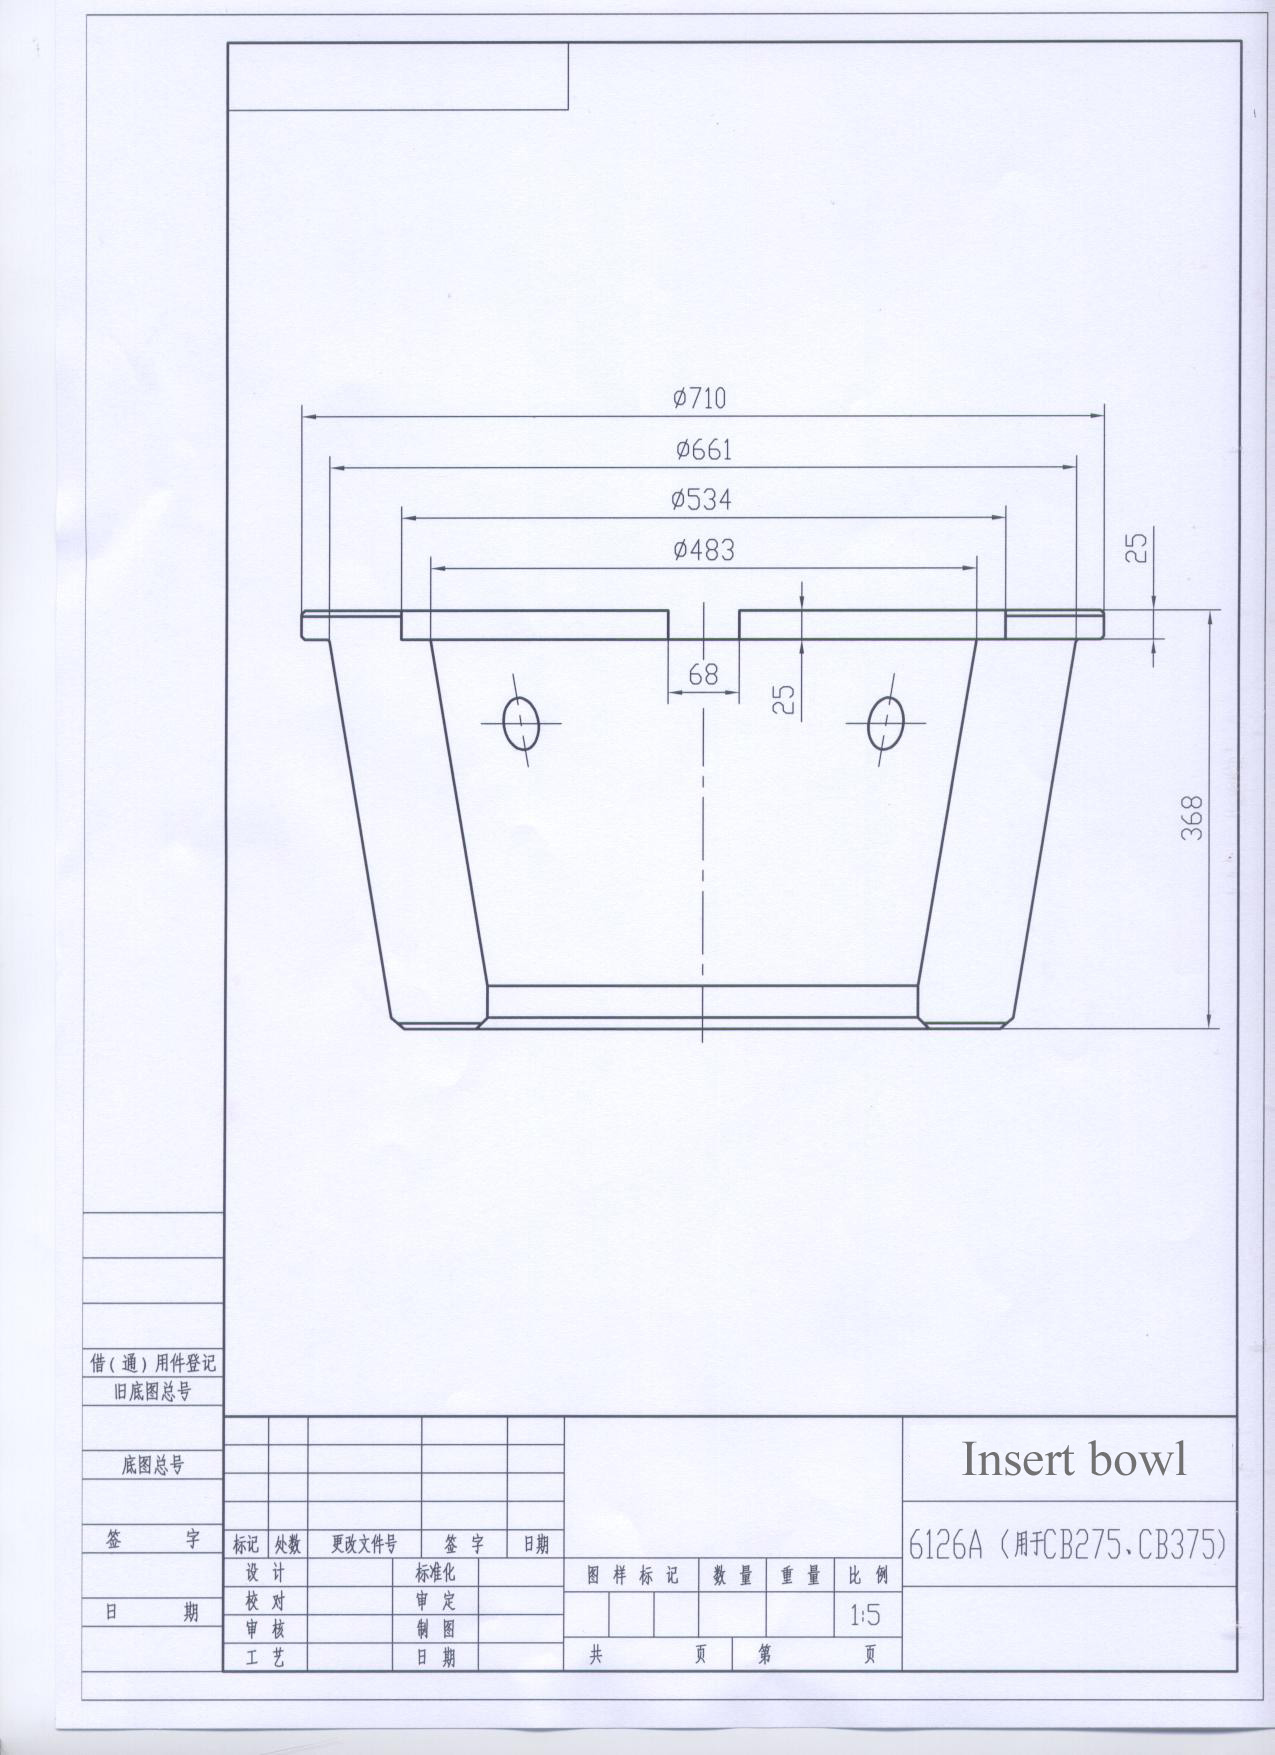 6126 insert bowl drawing